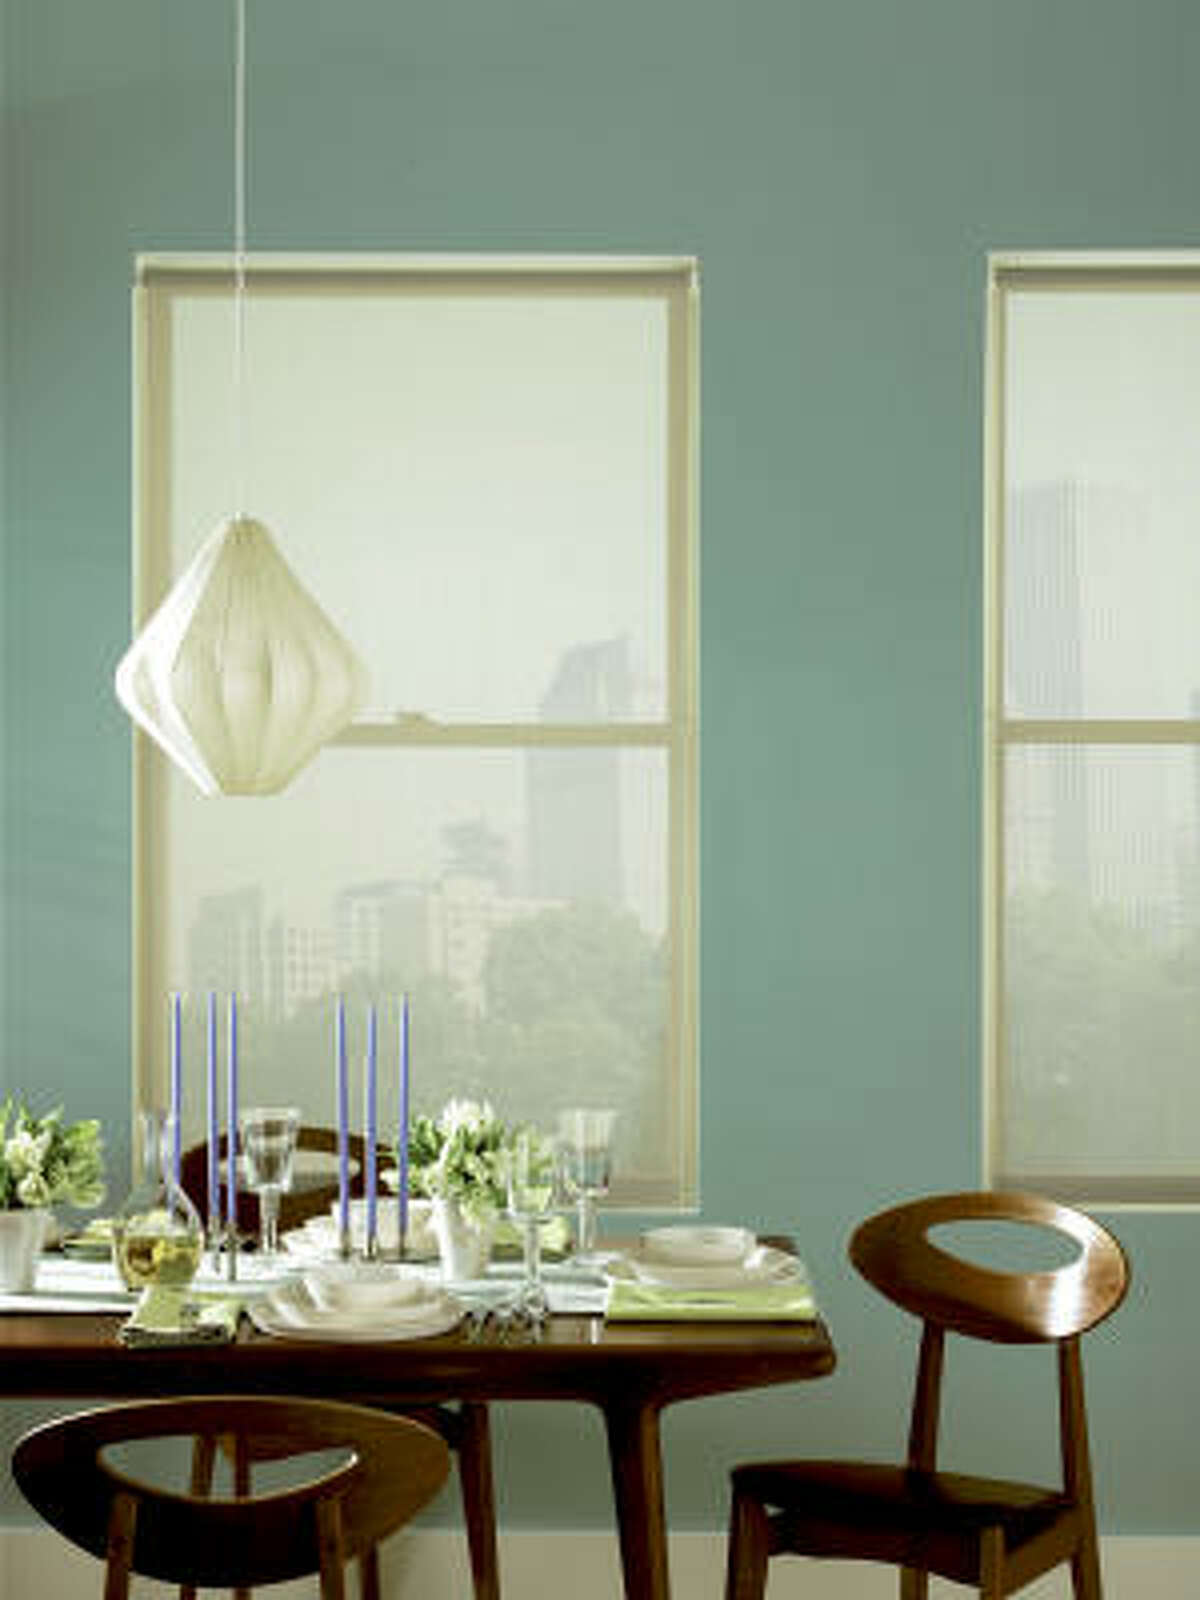 For best results, choose solar shades in highly reflective colors such as white.